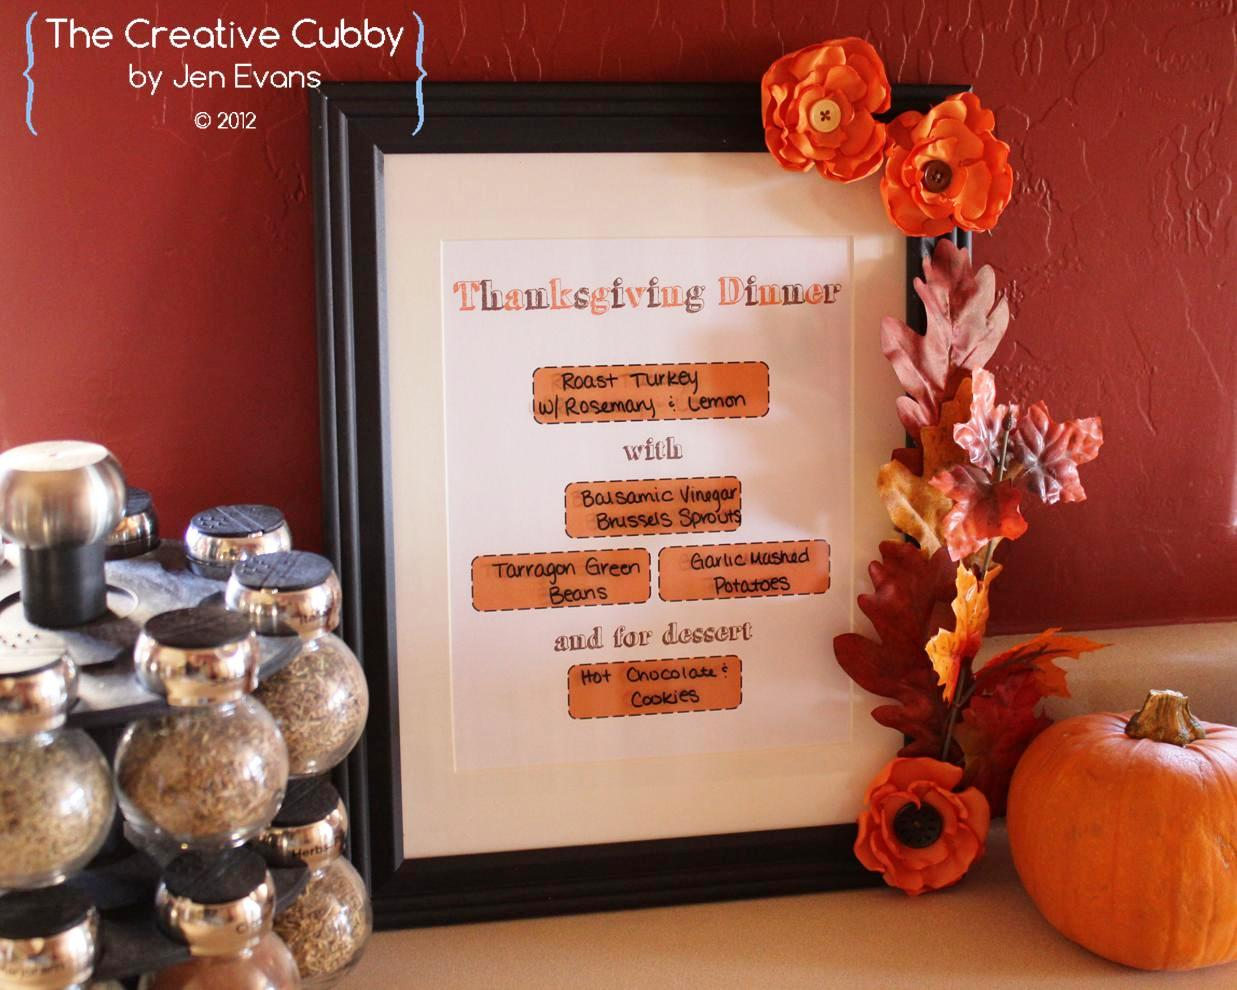 picture regarding Printable Thanksgiving Menu called The Imaginative Cubby: Thanksgiving Menu Coming up with Printables